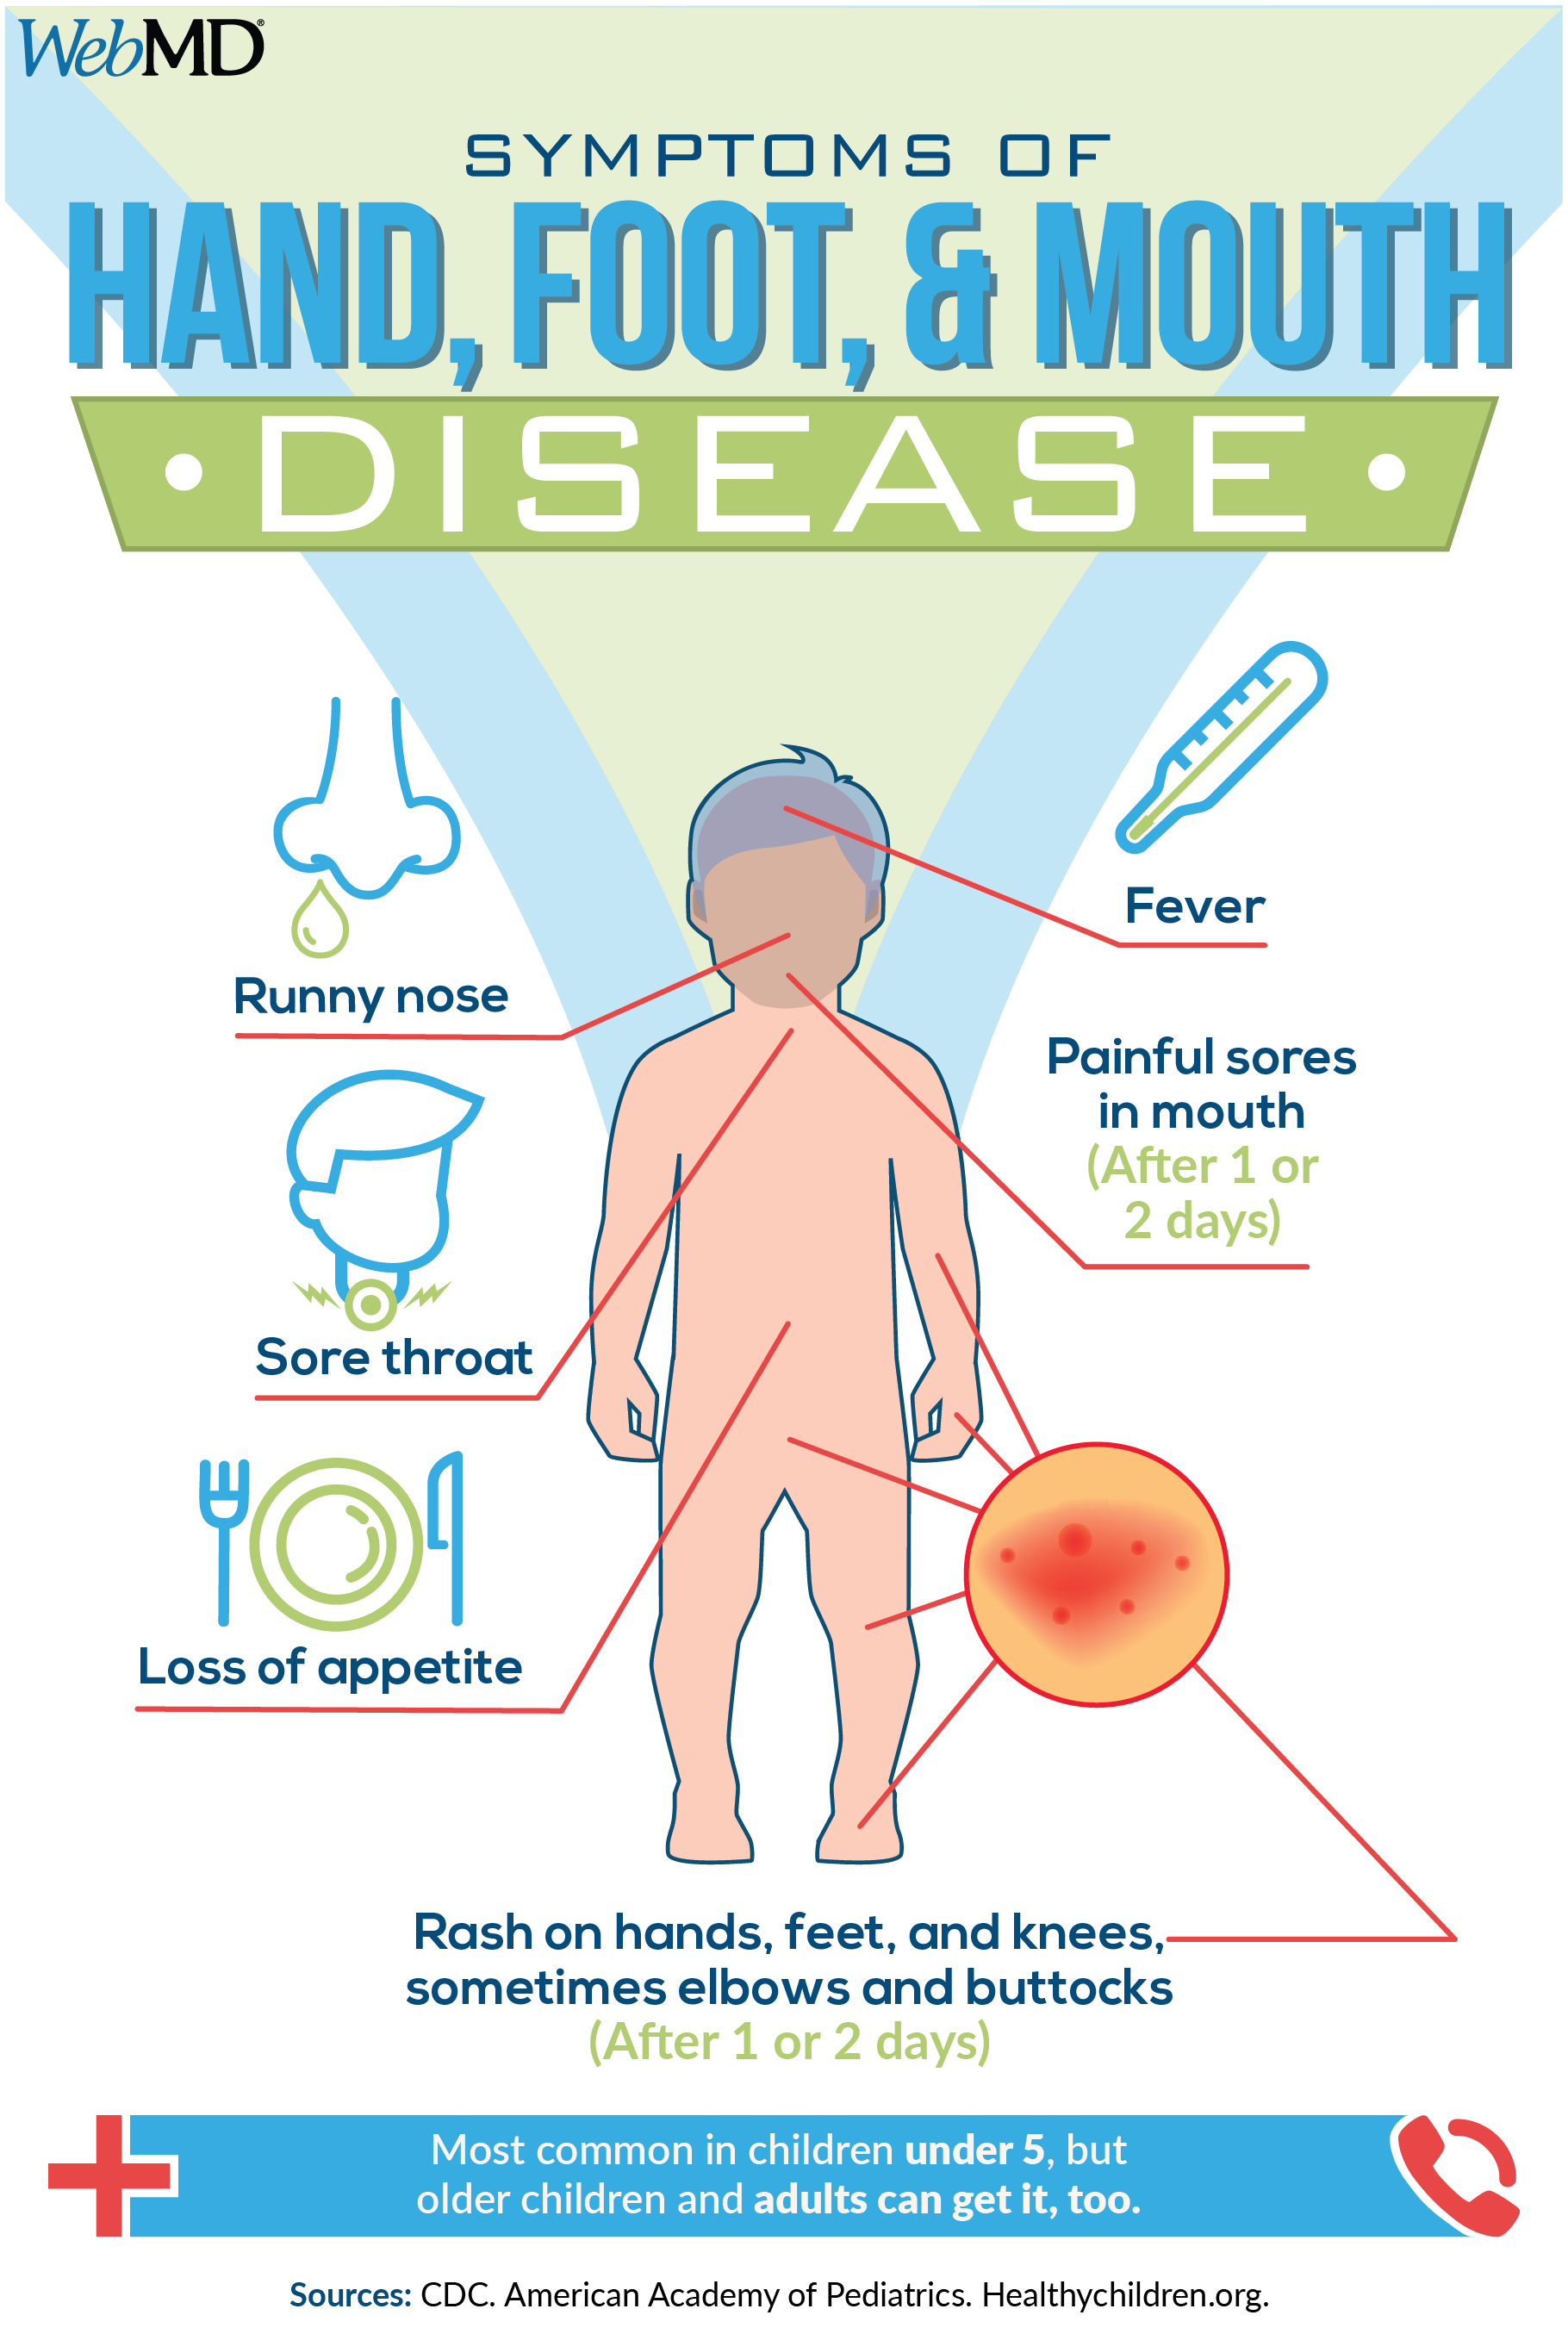 hight resolution of hand foot and mouth disease or hfmd is caused by a virus symptoms include ulcers or sores inside or around the mouth and a rash or blisters on the